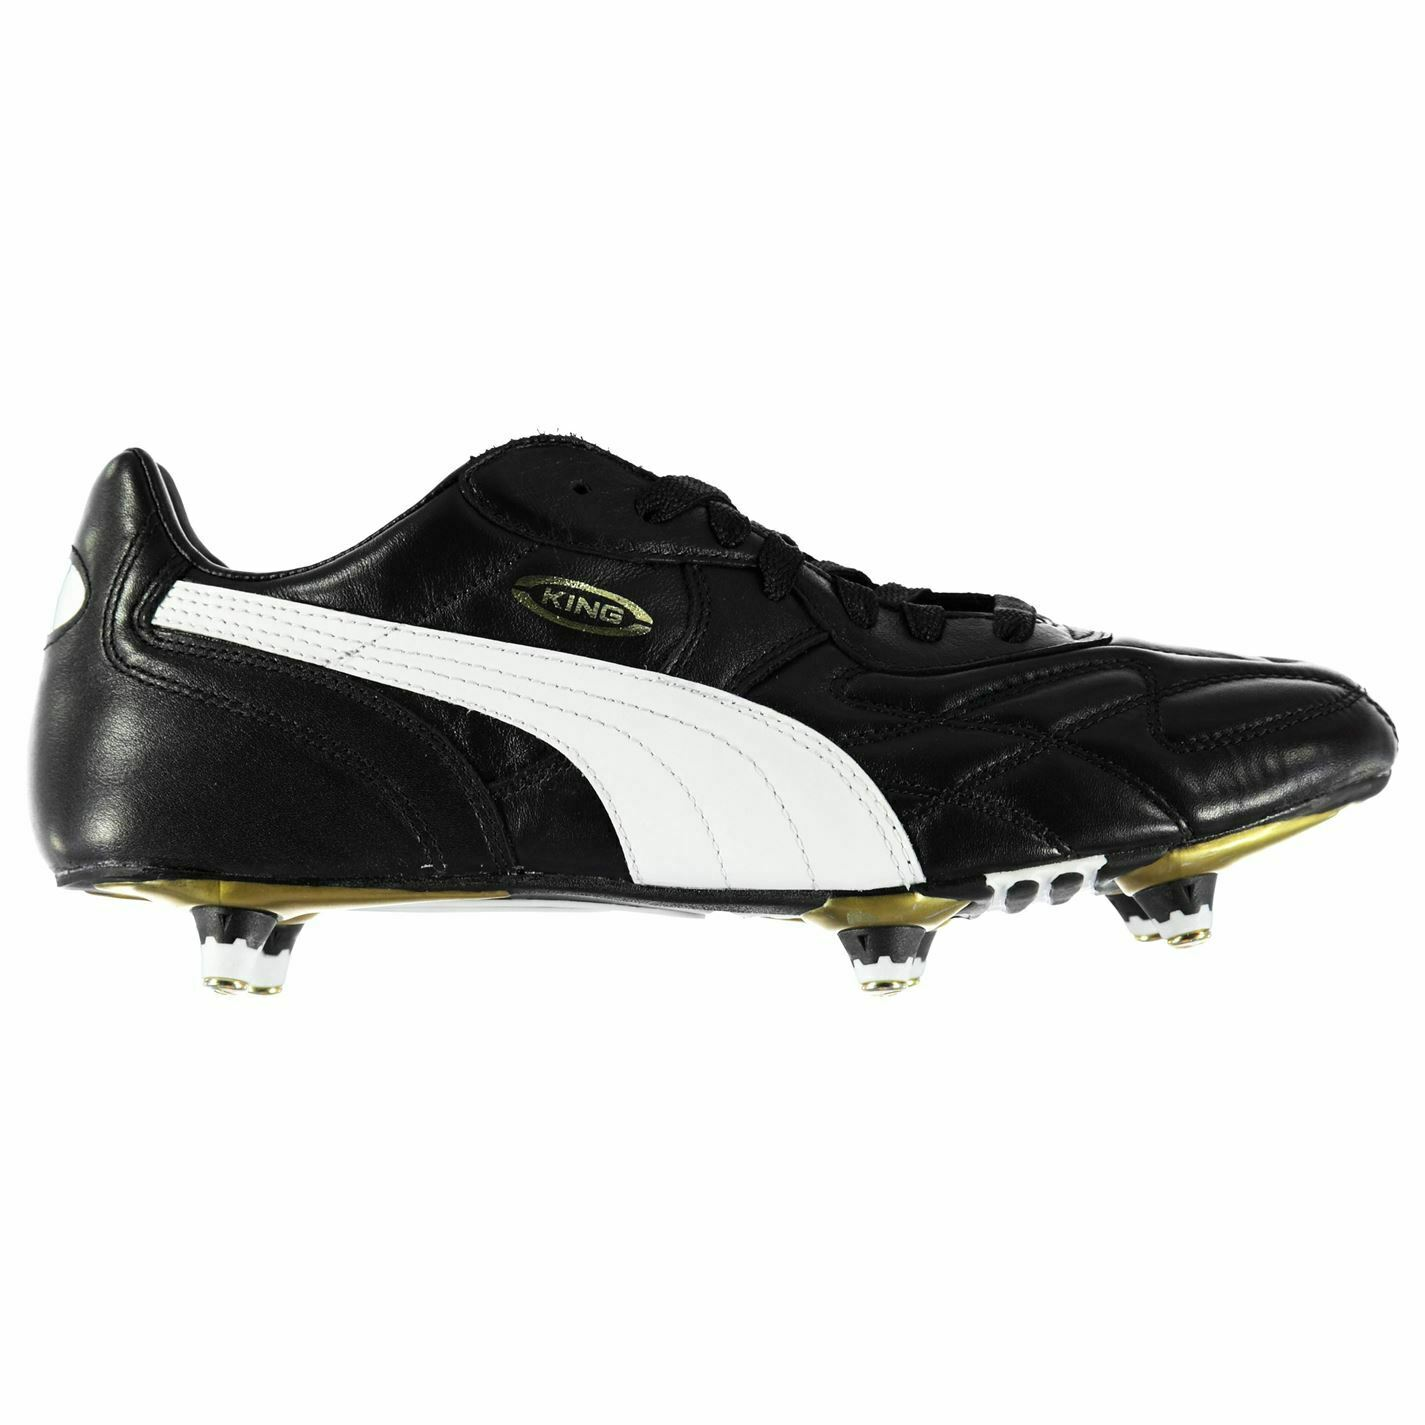 Puma King Pro SG Football Boots Mens Gents Soft Ground Laces Fastened Studs